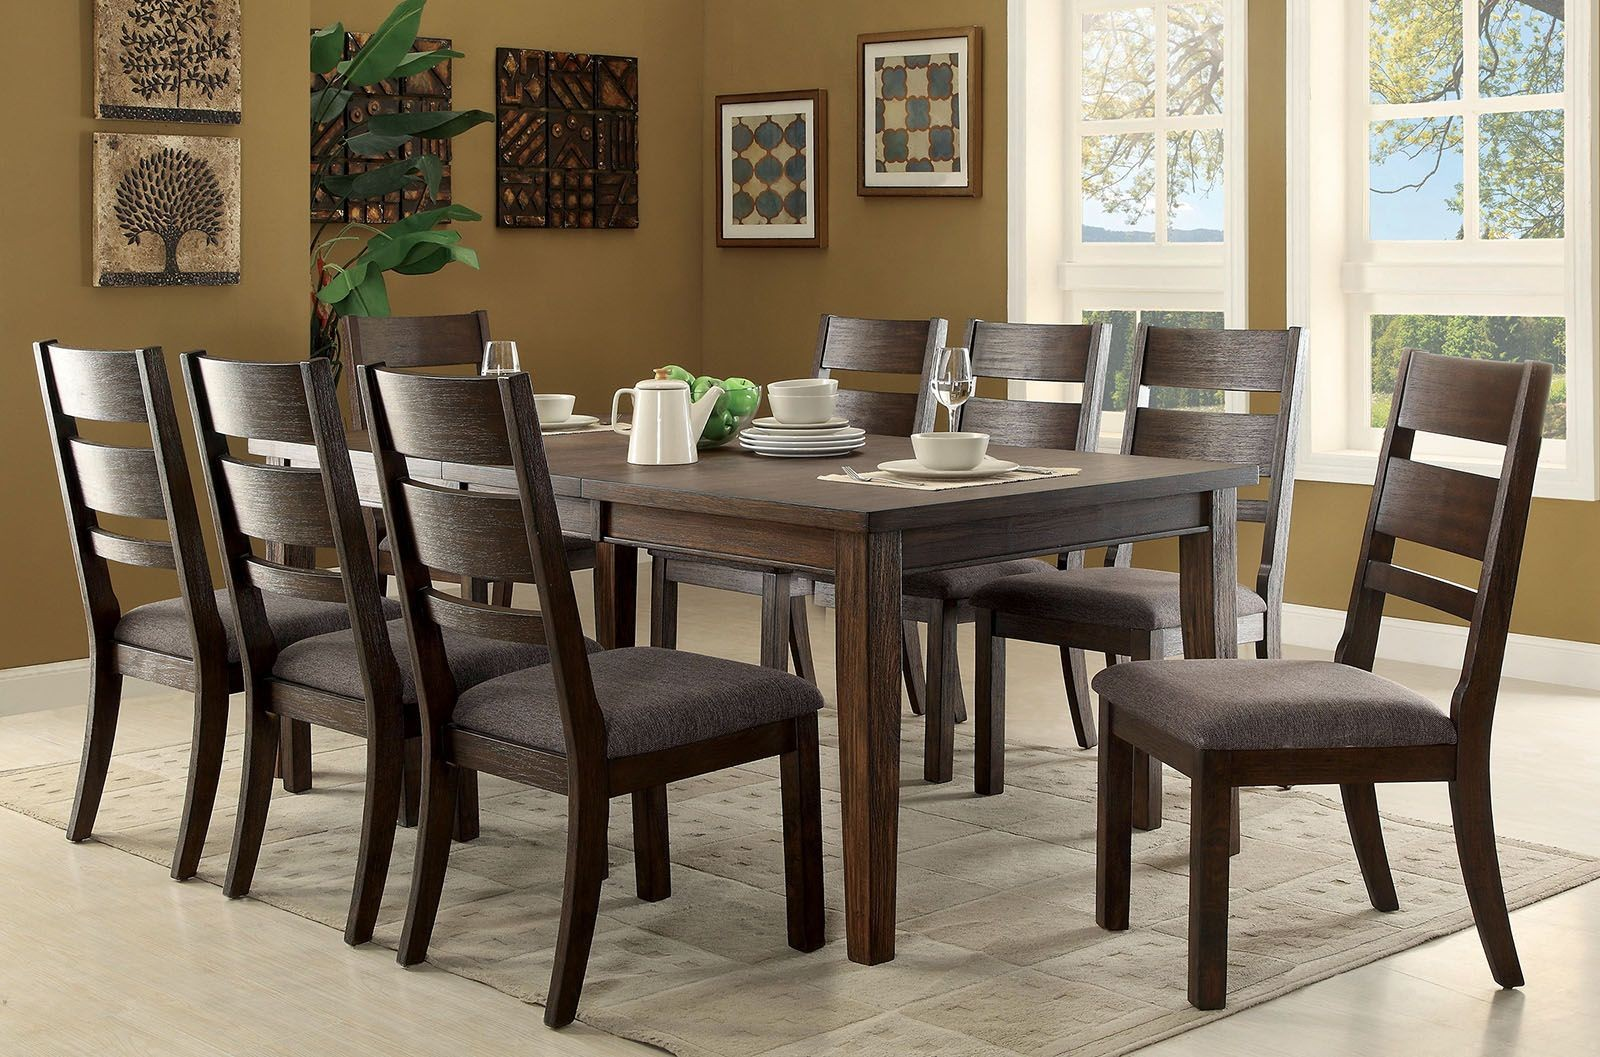 Isadora Espresso Extendable Rectangular Dining Room Set CM3191T Furniture O